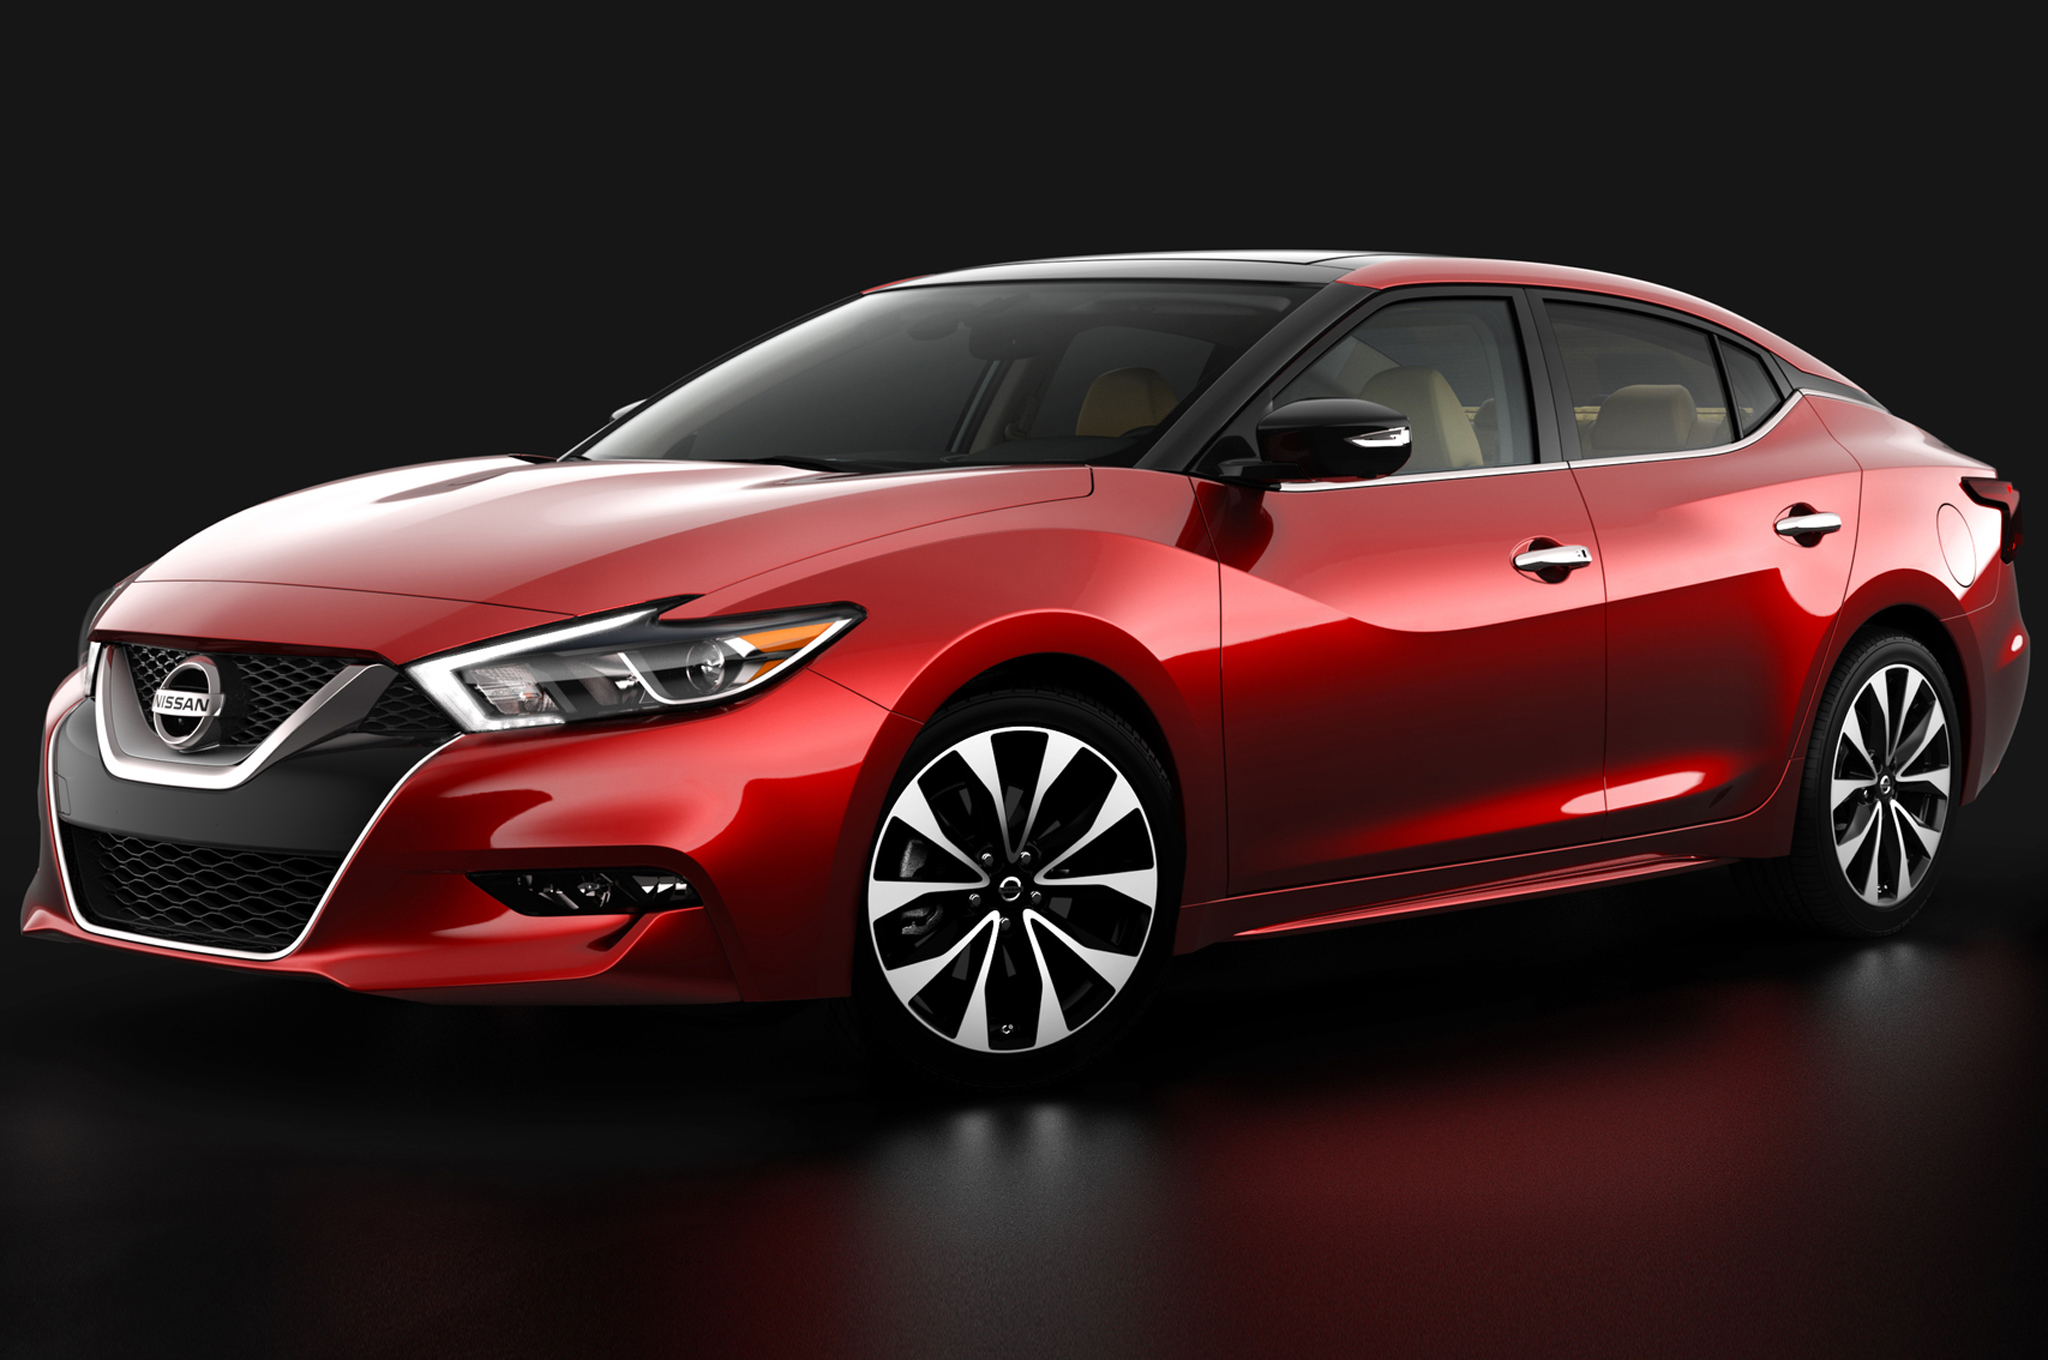 2016 Nissan Maxima Headed to New York After Super Bowl Cameo